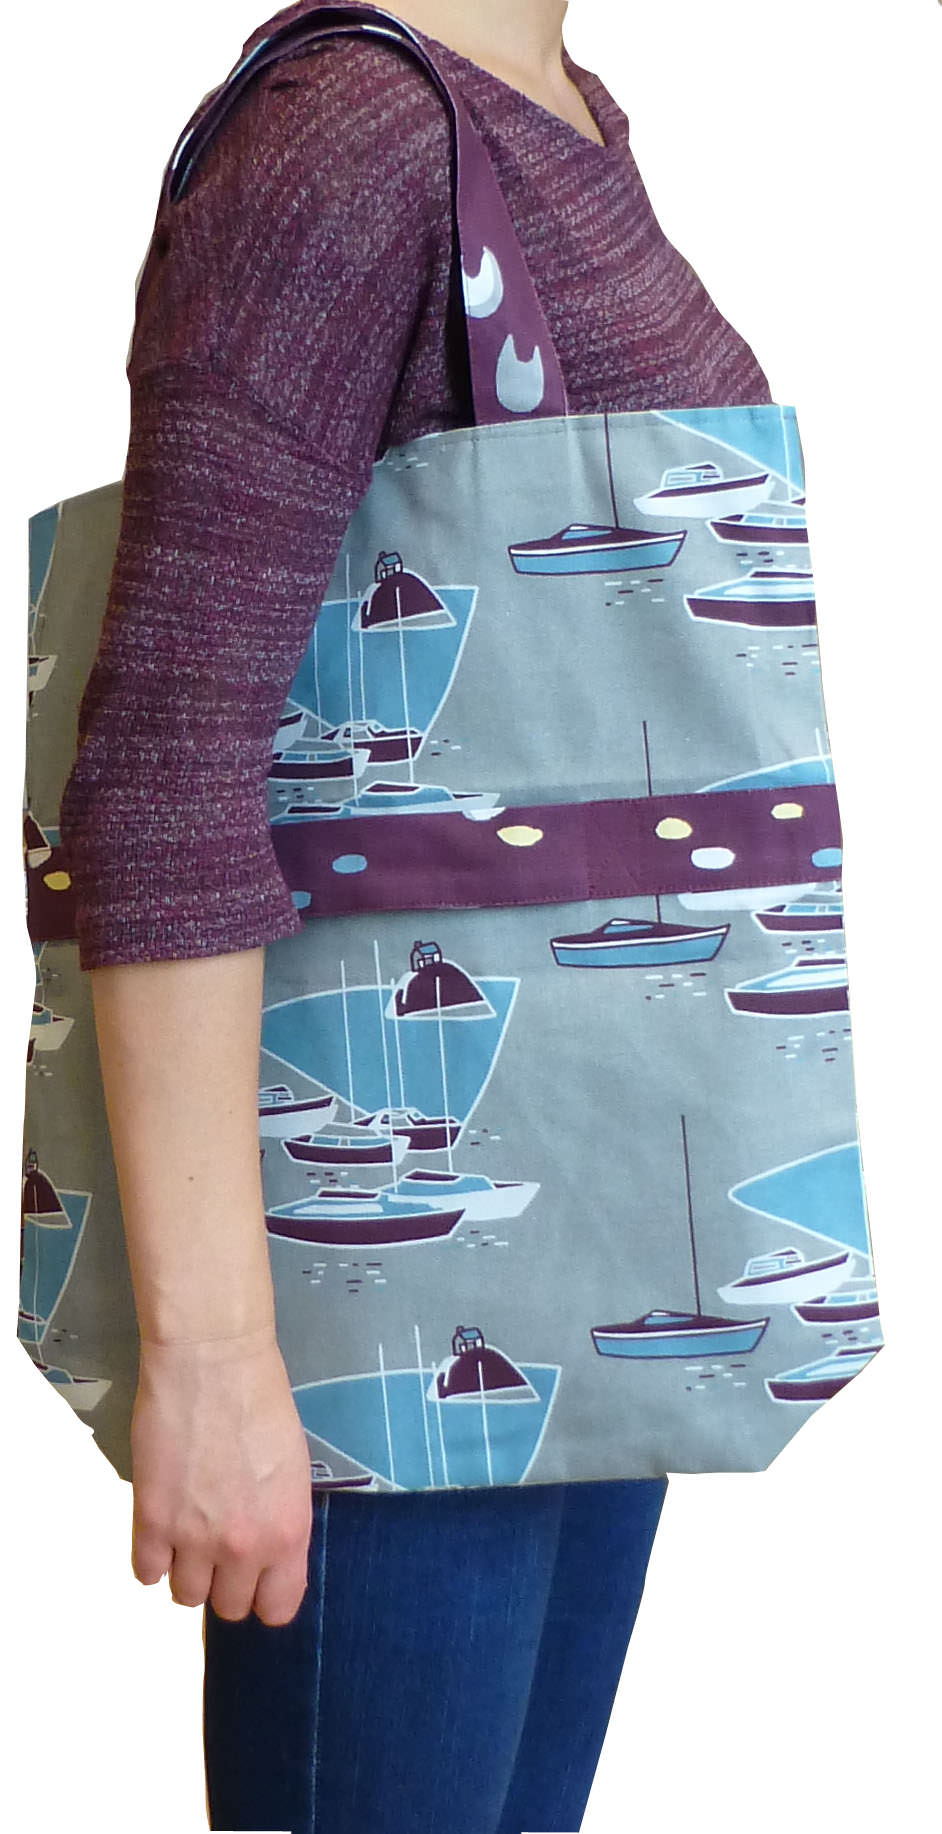 model with unfolded two in one bag in Boats fabric.jpg